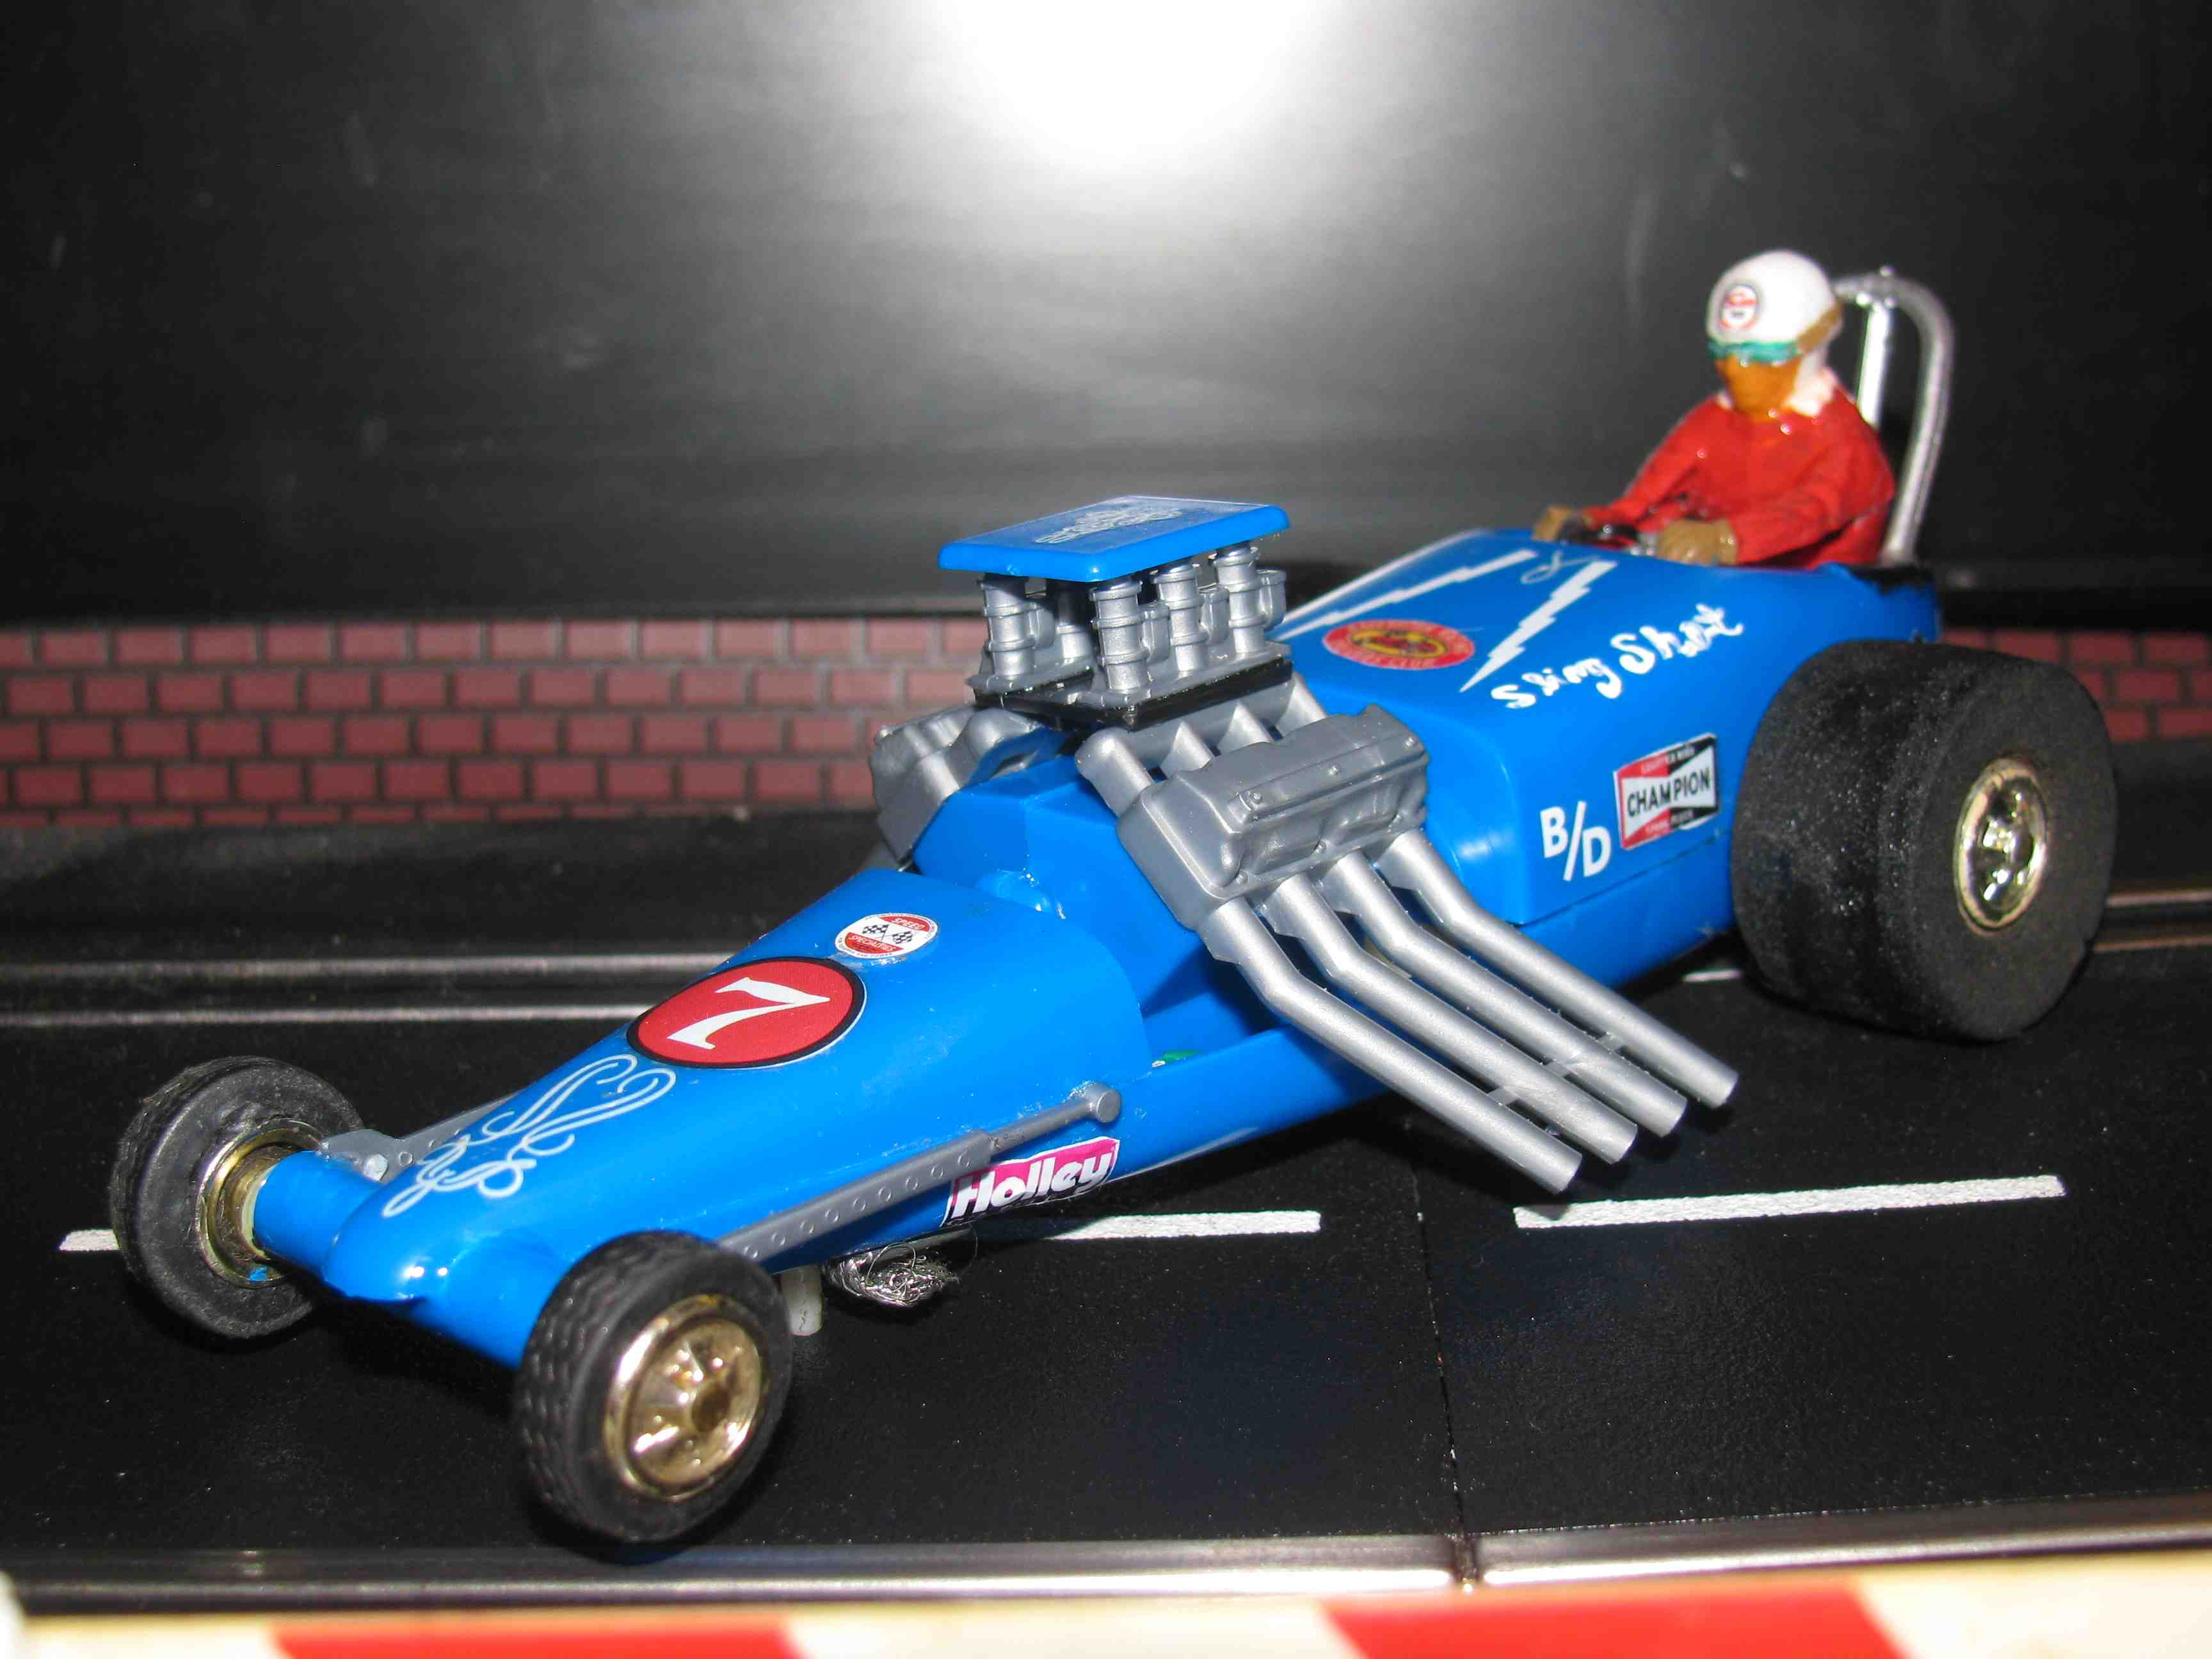 * SOLD * Vintage Revell Monogram Sling Shot Dragster Slot Car 1/32 – 1/24 Scale - Car #7